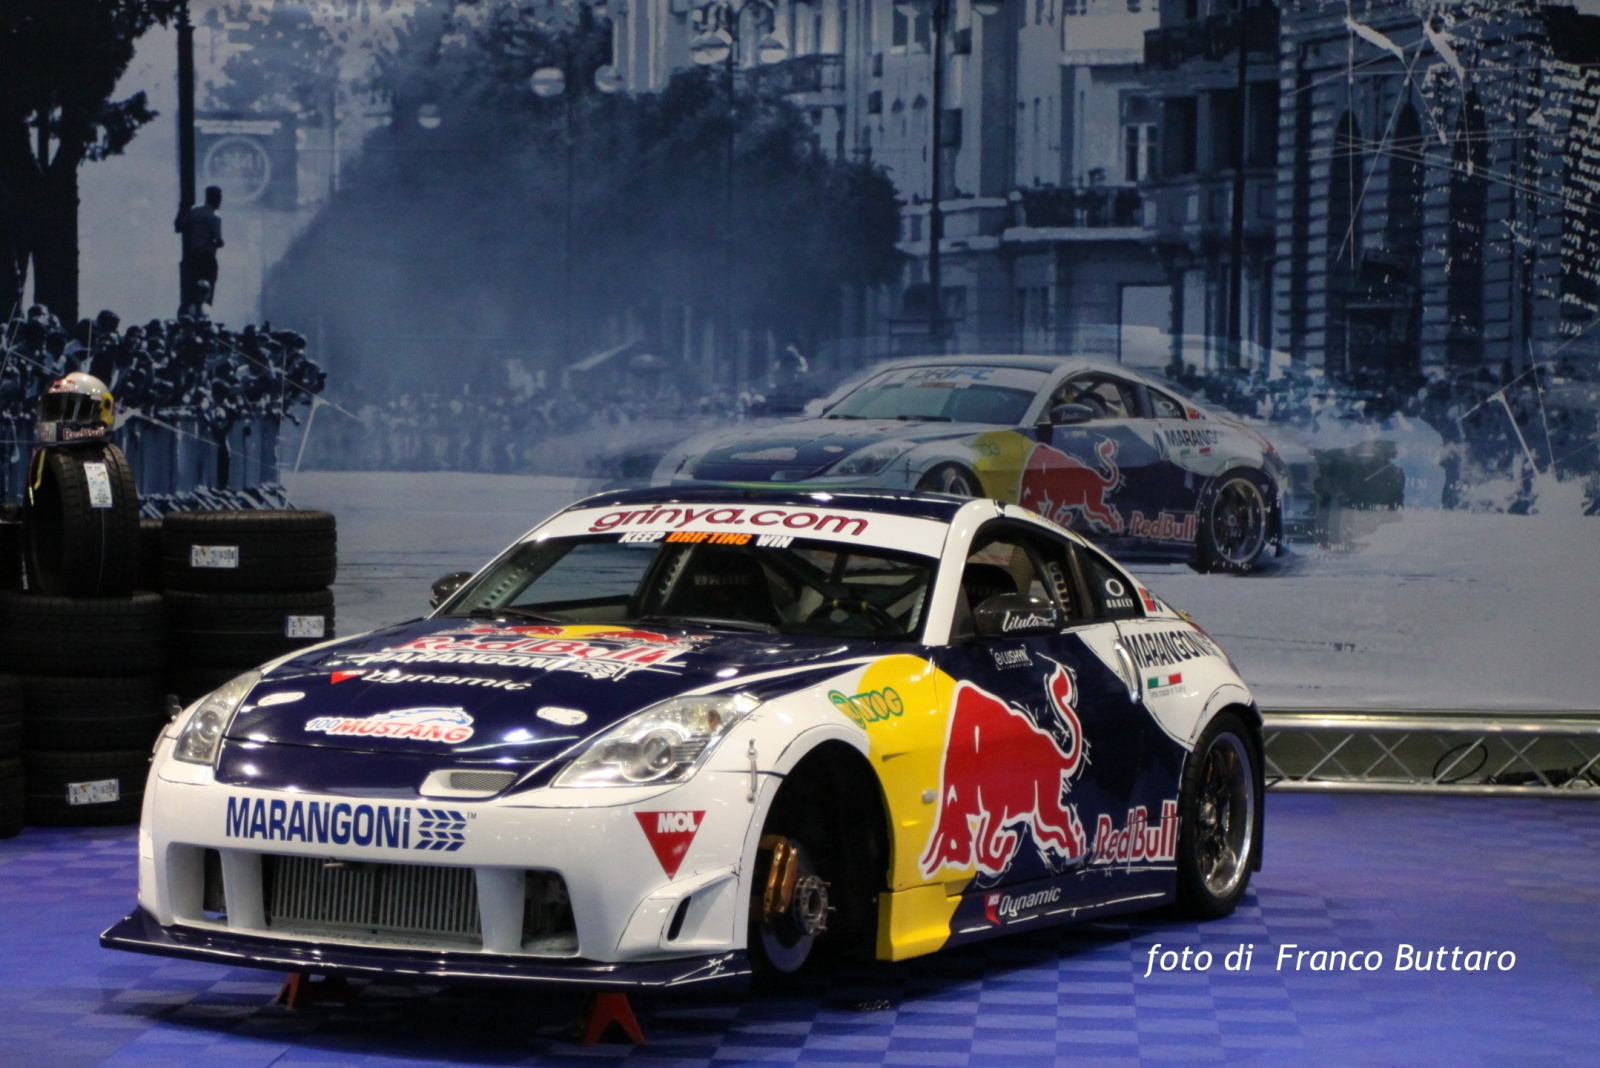 Motor Show 2012 - Red Bull Speed day - Bologna, 8 dicembre 2012